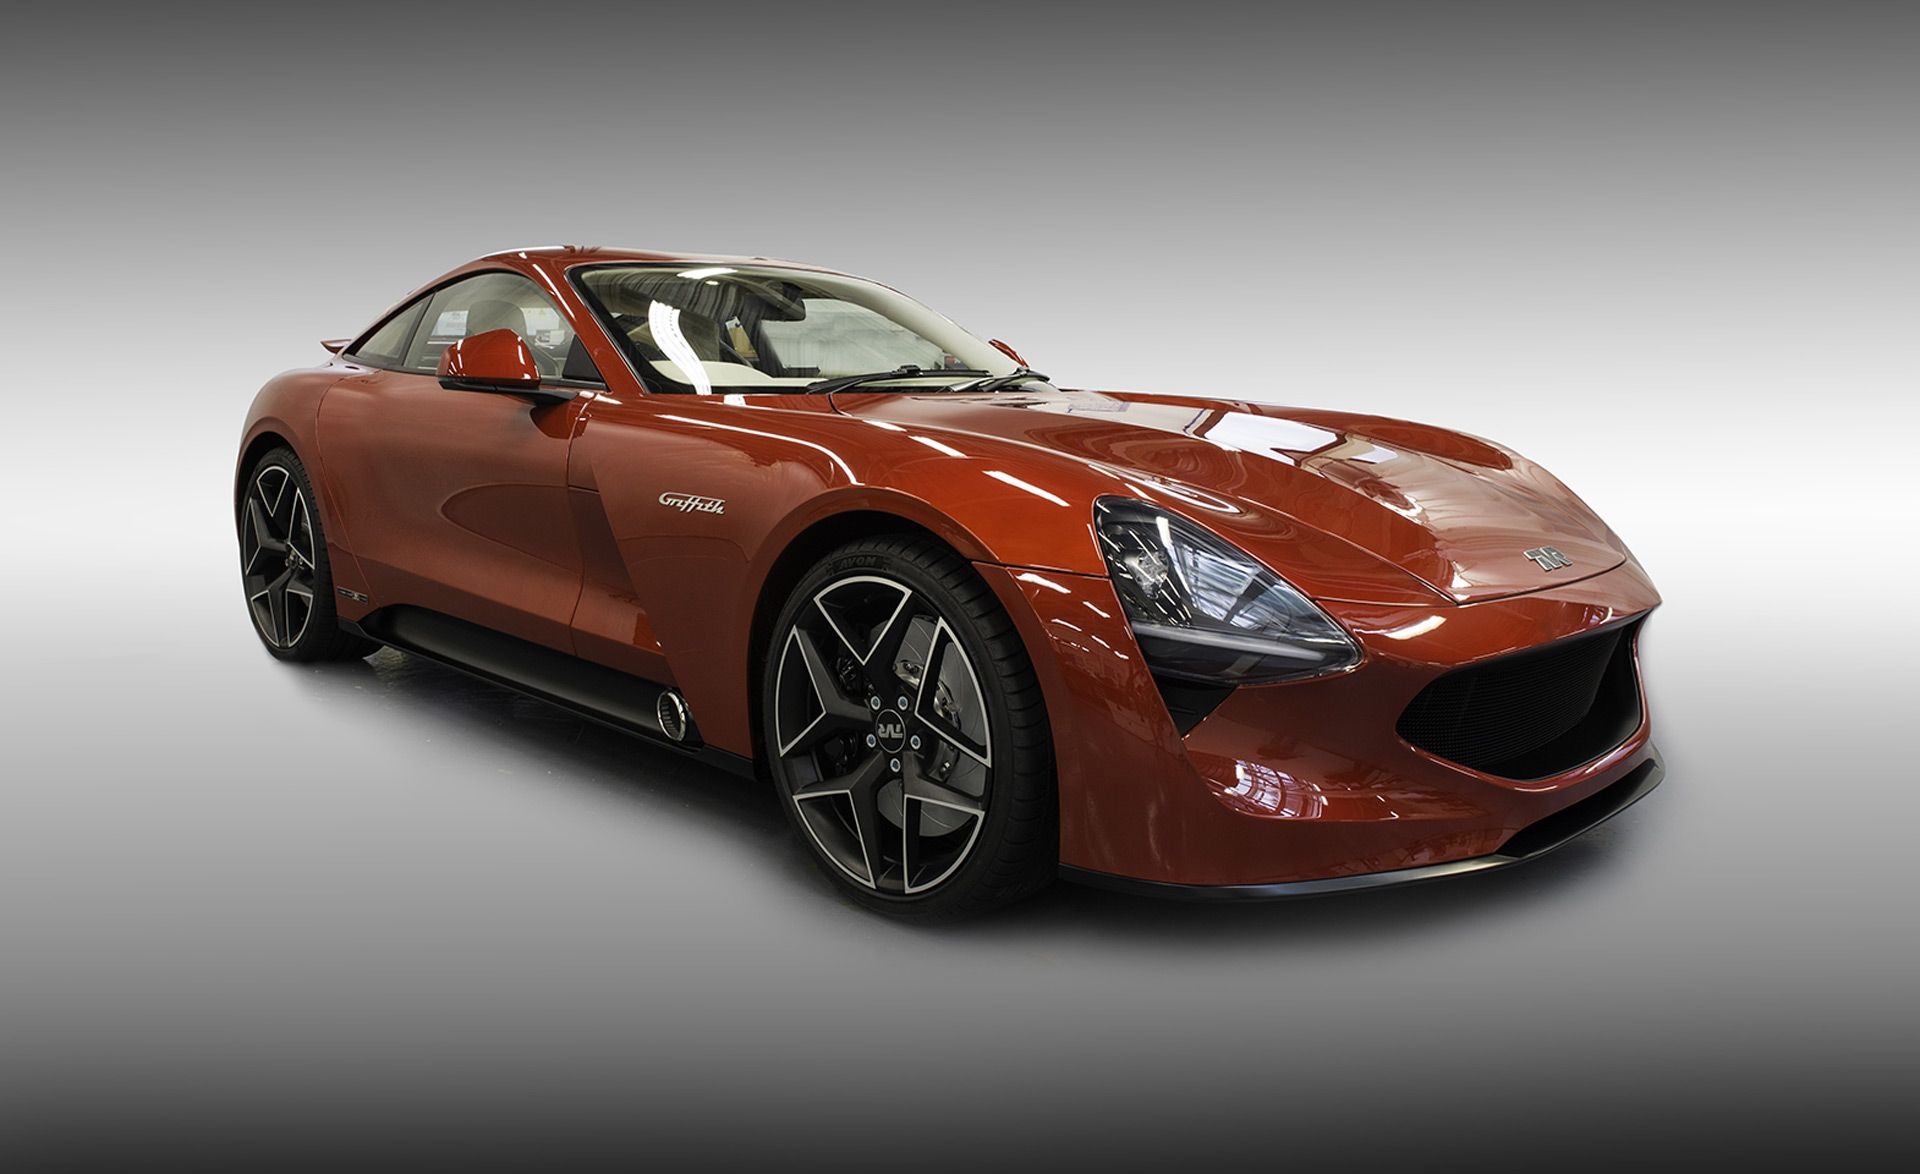 Tvr griffith revealed beloved british sports car company is back